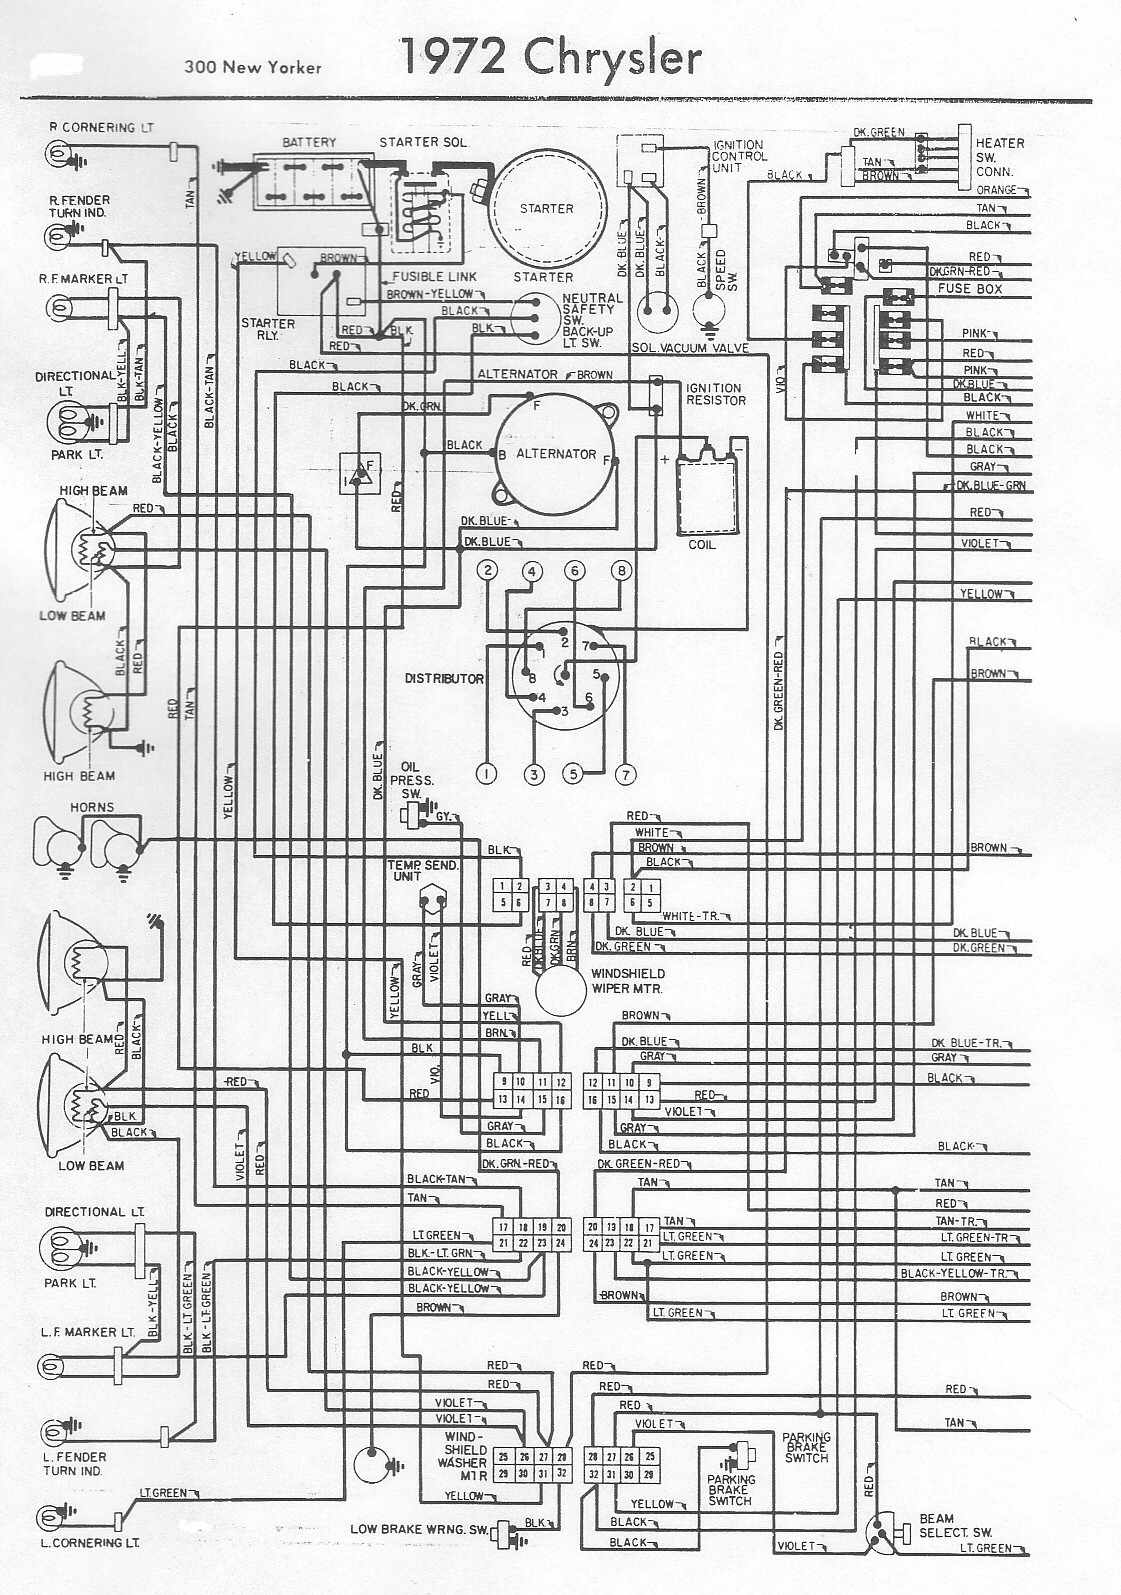 hight resolution of 1954 mopar wiring diagrams simple wiring post mymopar wiring diagram 1954 chrysler wiring diagram data